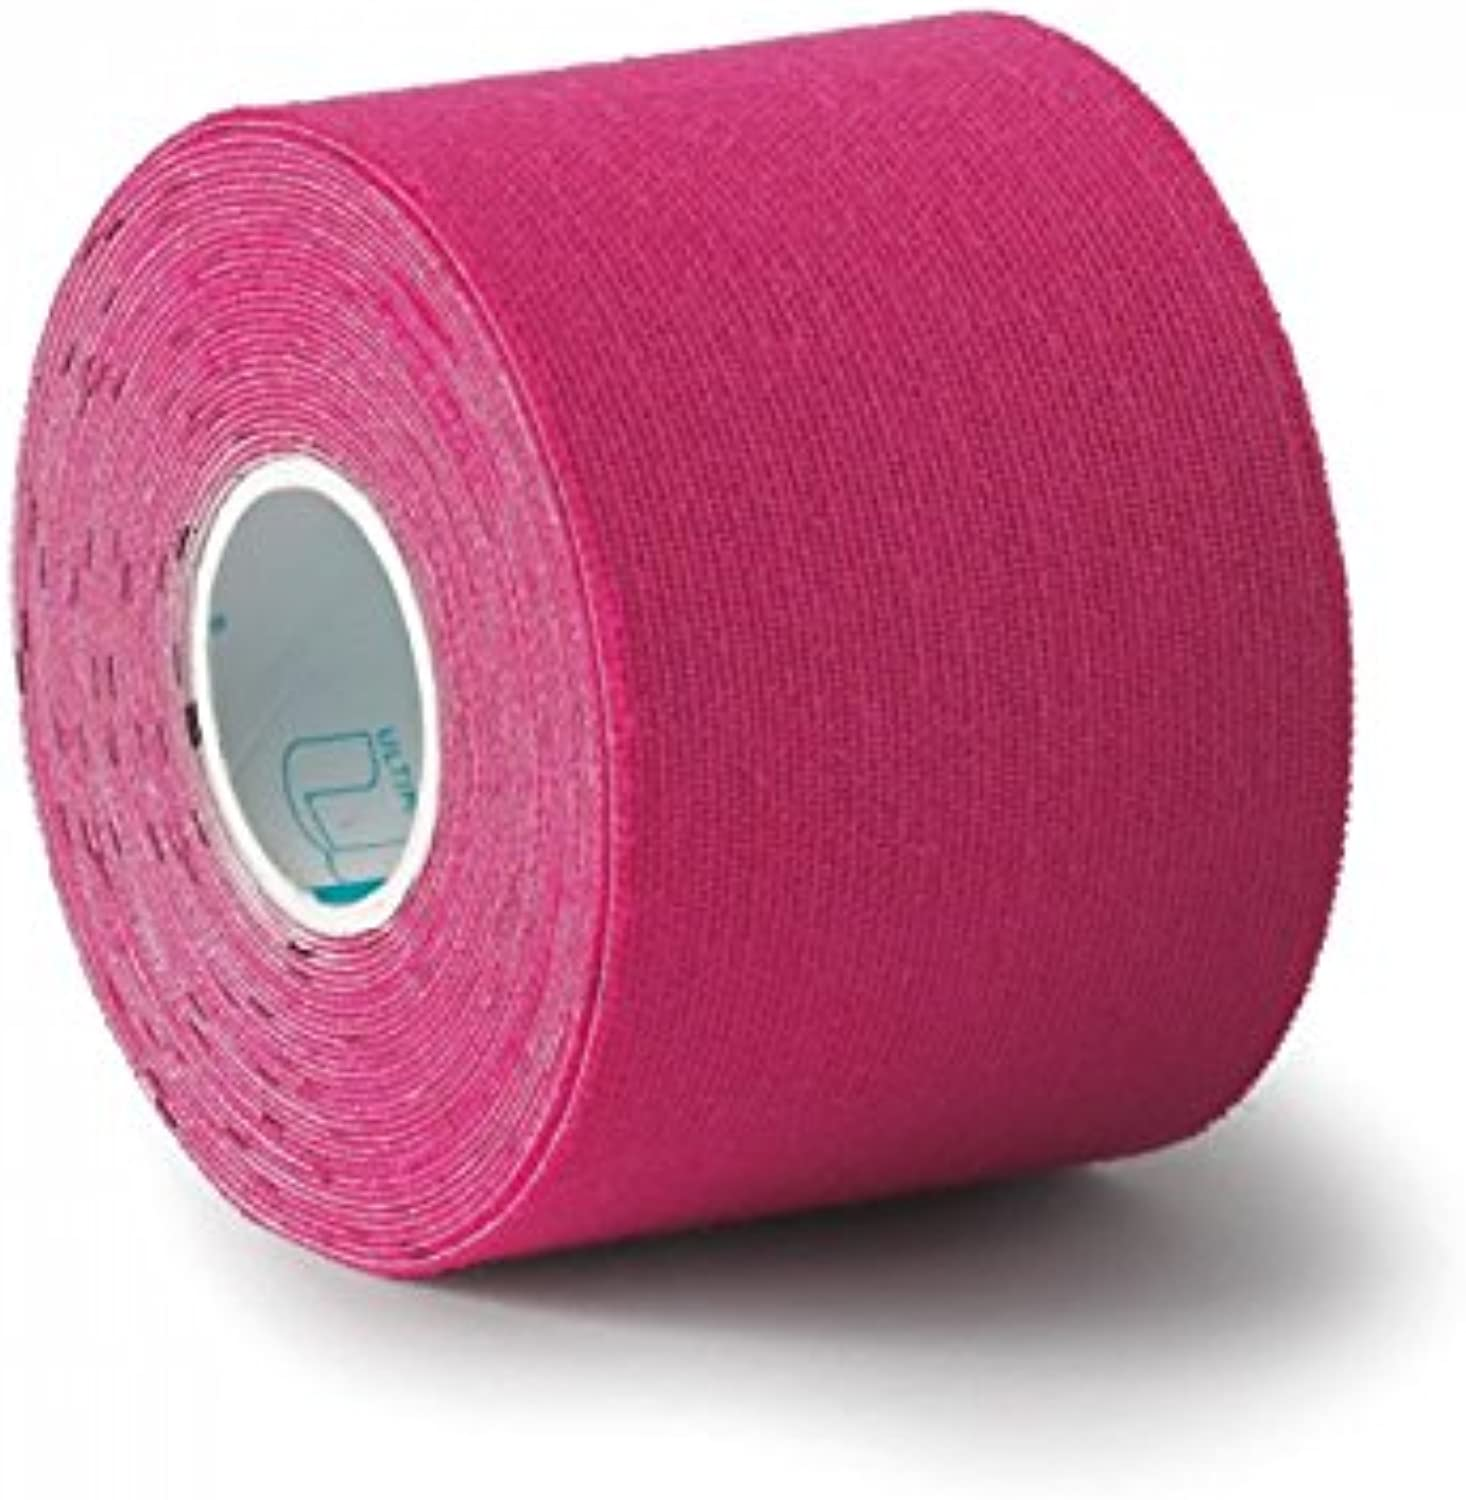 Ultimate Performance Kinesiology Tape (50mm X 5m Roll)  Pink